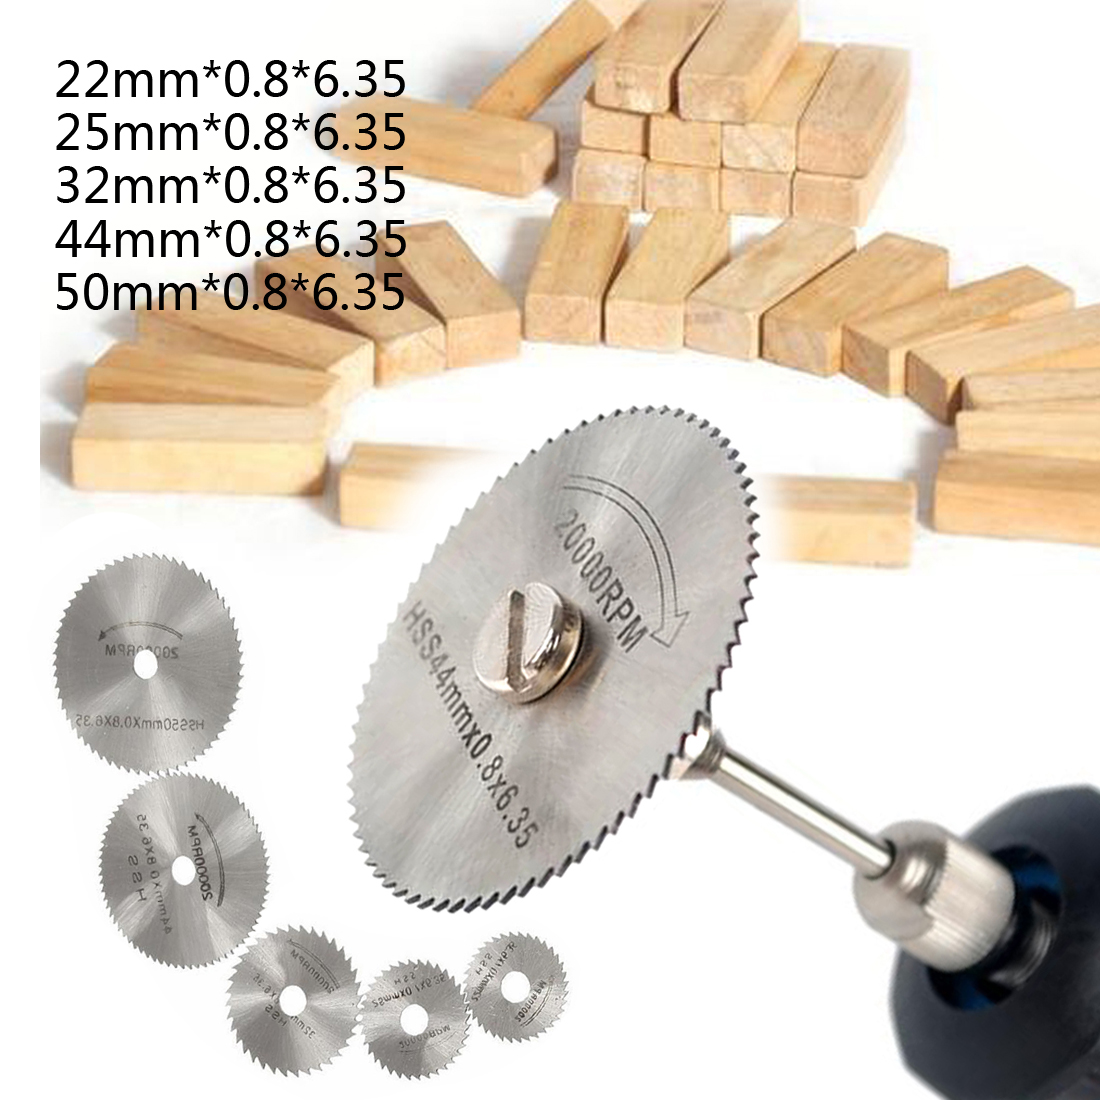 Hss High-speed-steel Circular Rotary Circular Saw Blades Mandrel For Tools Wood Cutting Saw Blades